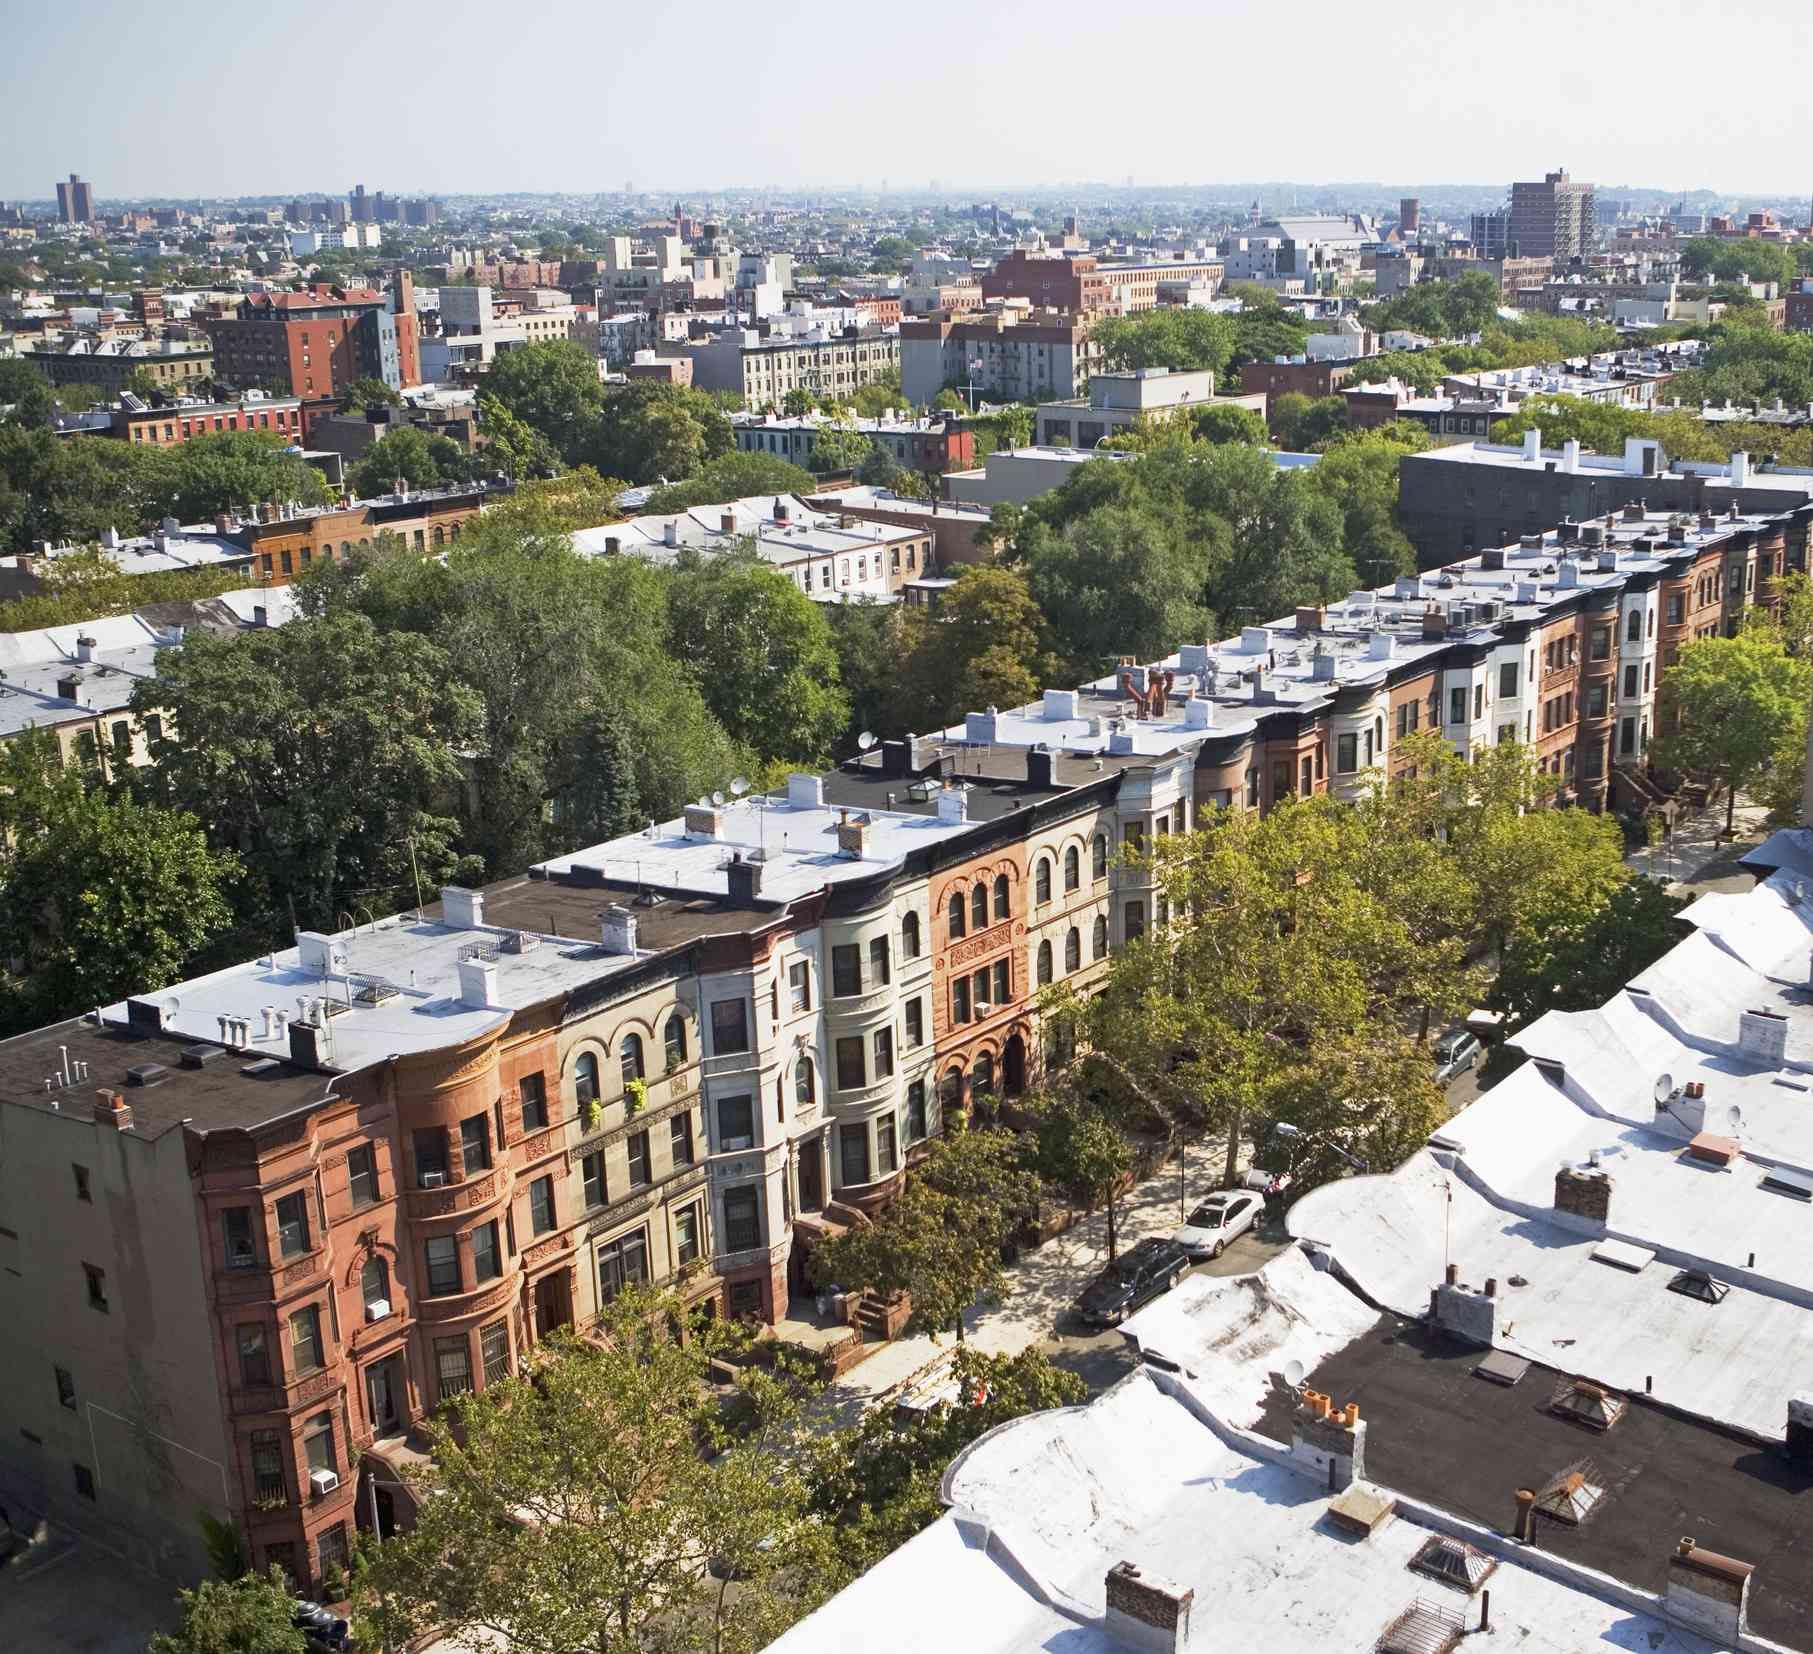 Rowhouses in NYC